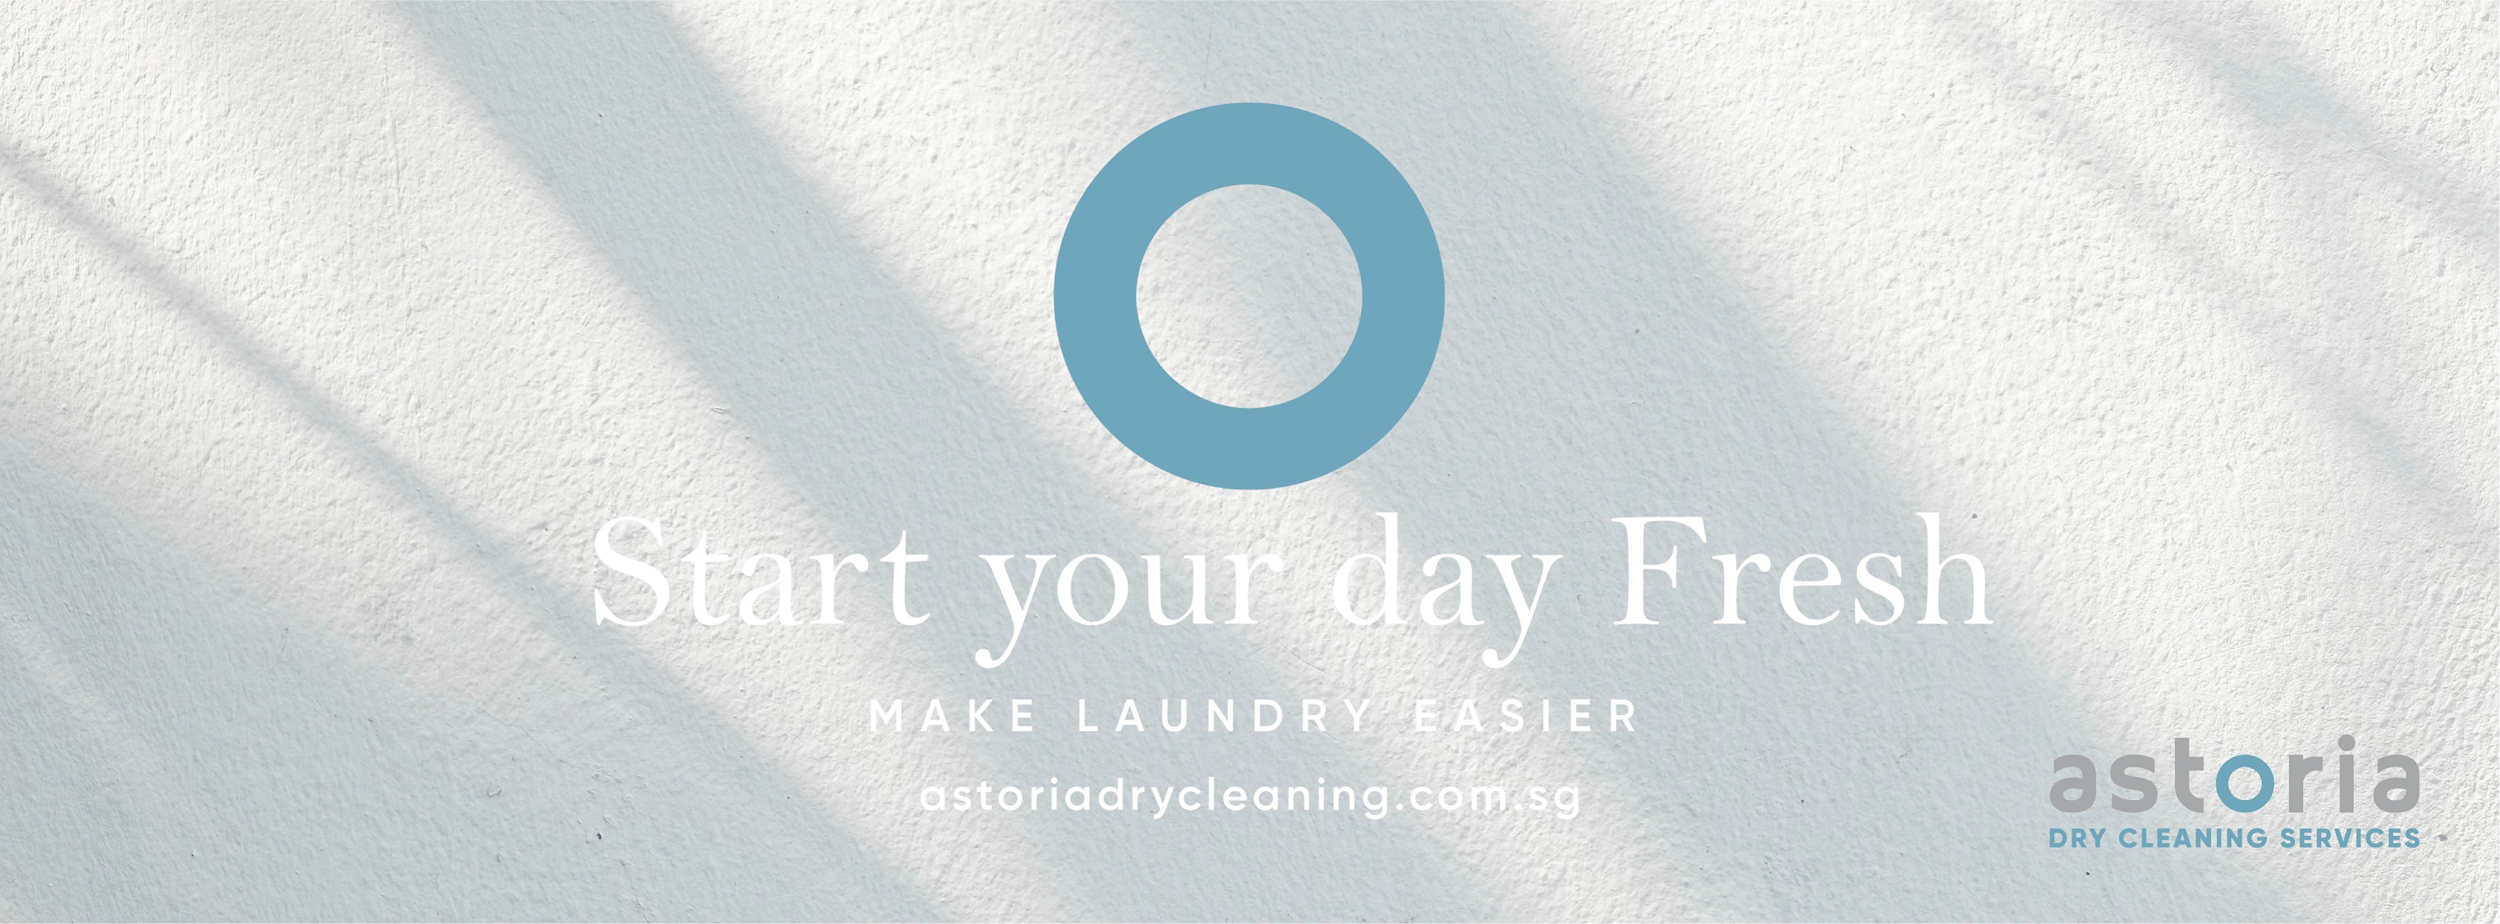 Astoria Dry Cleaning is Top 10 Laundry Services in Singapore Islandwide